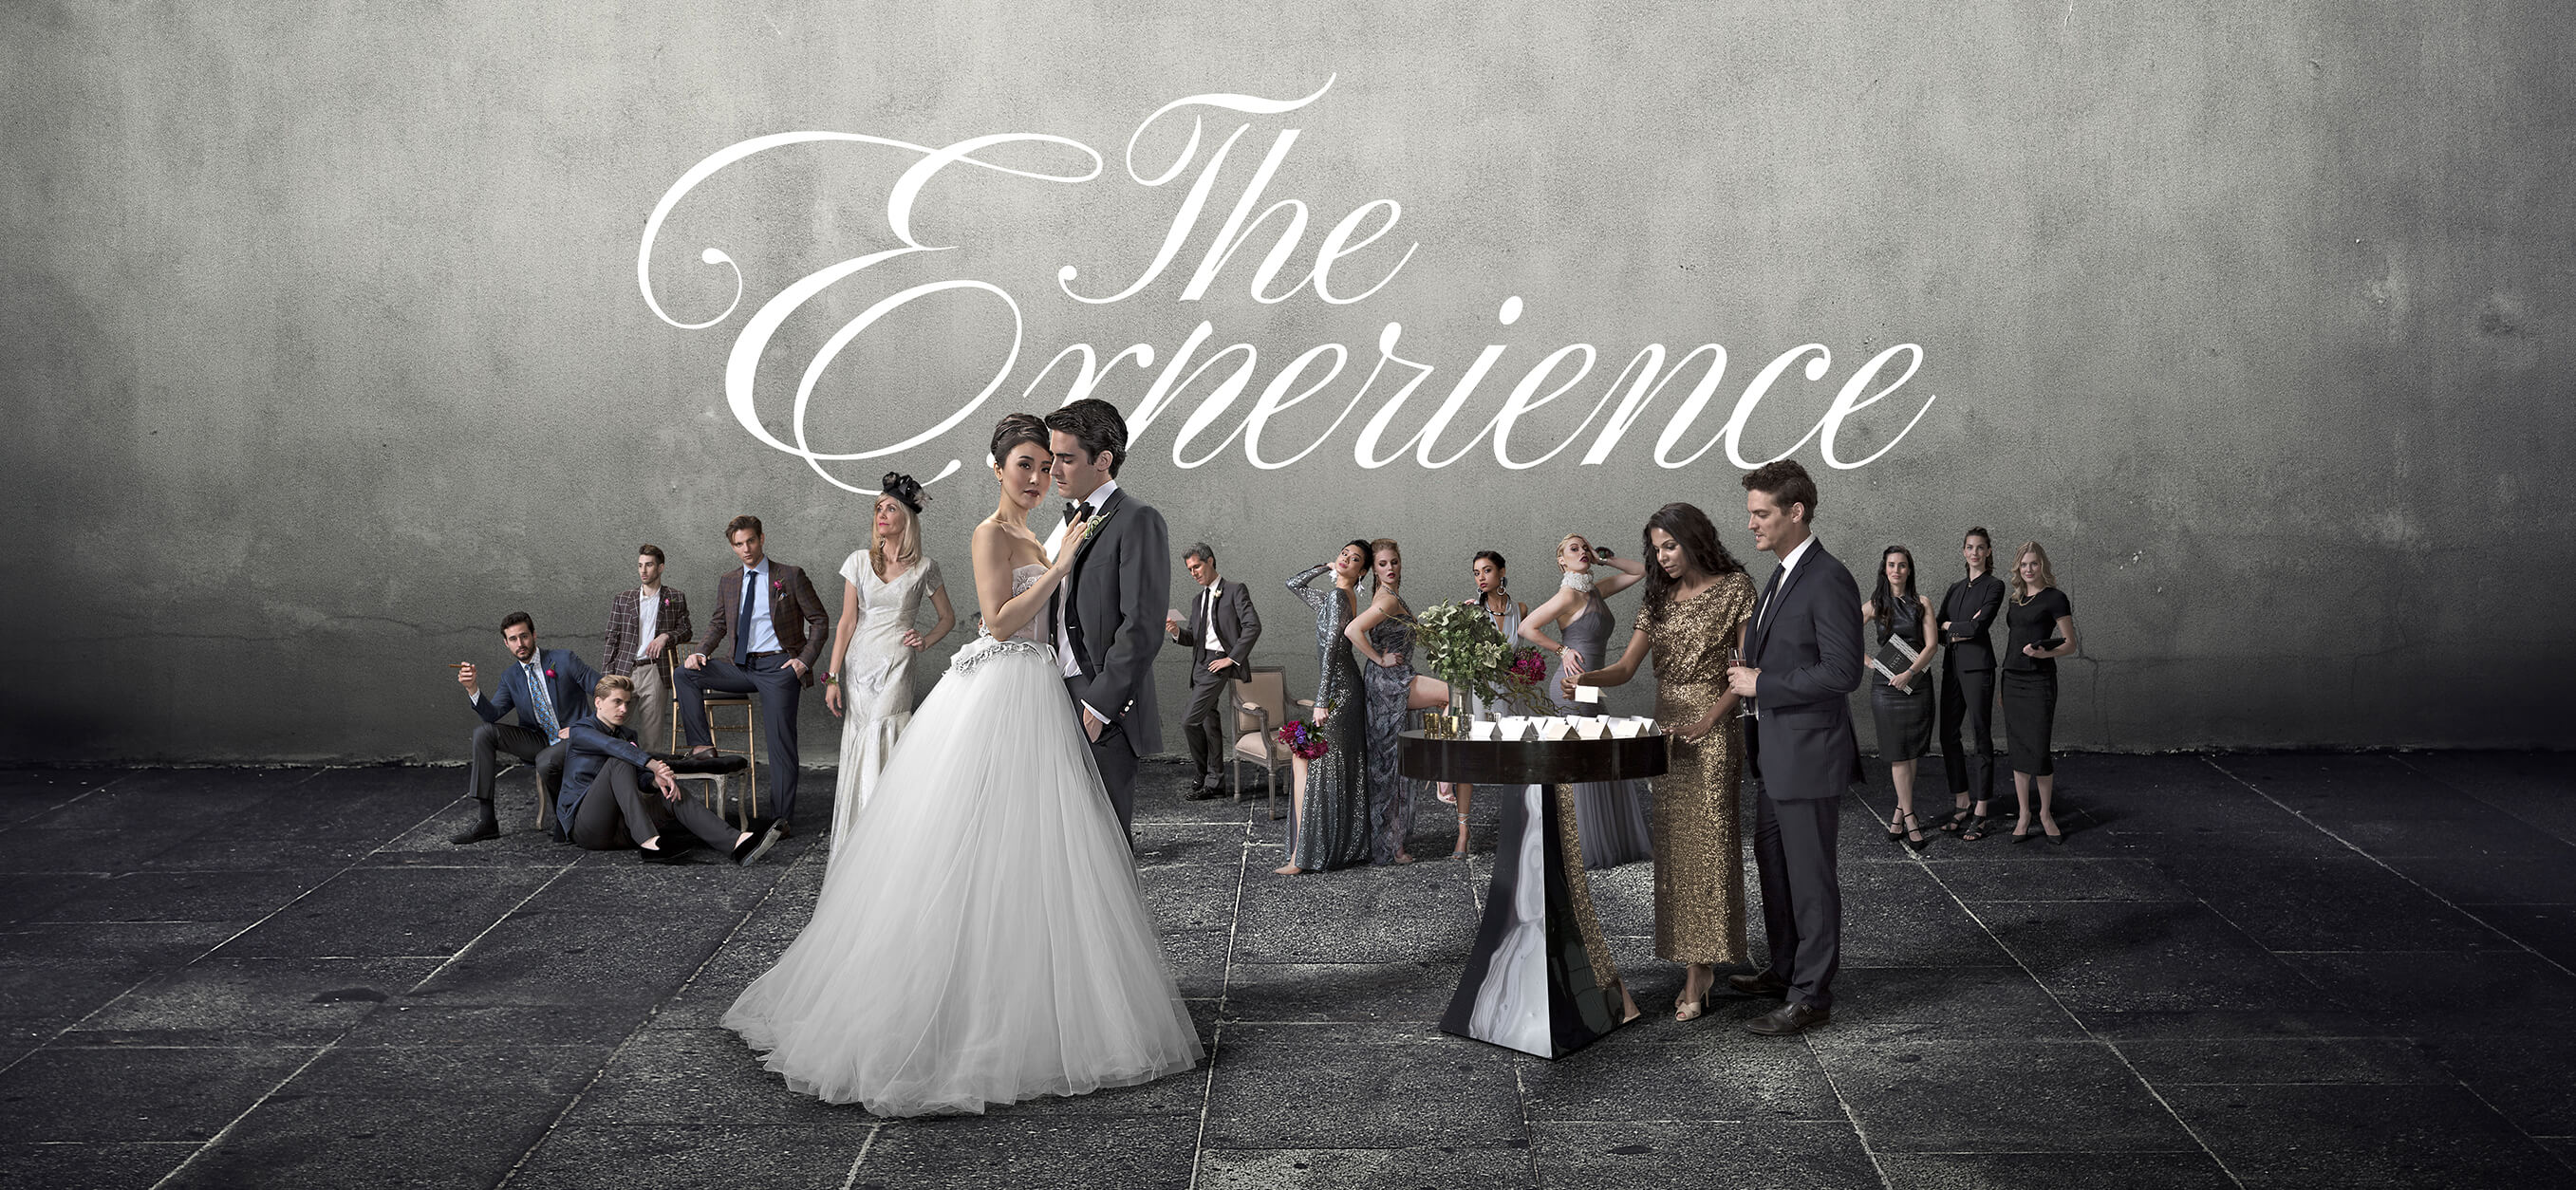 intimate wedding venues in orange county ca%0A Experience